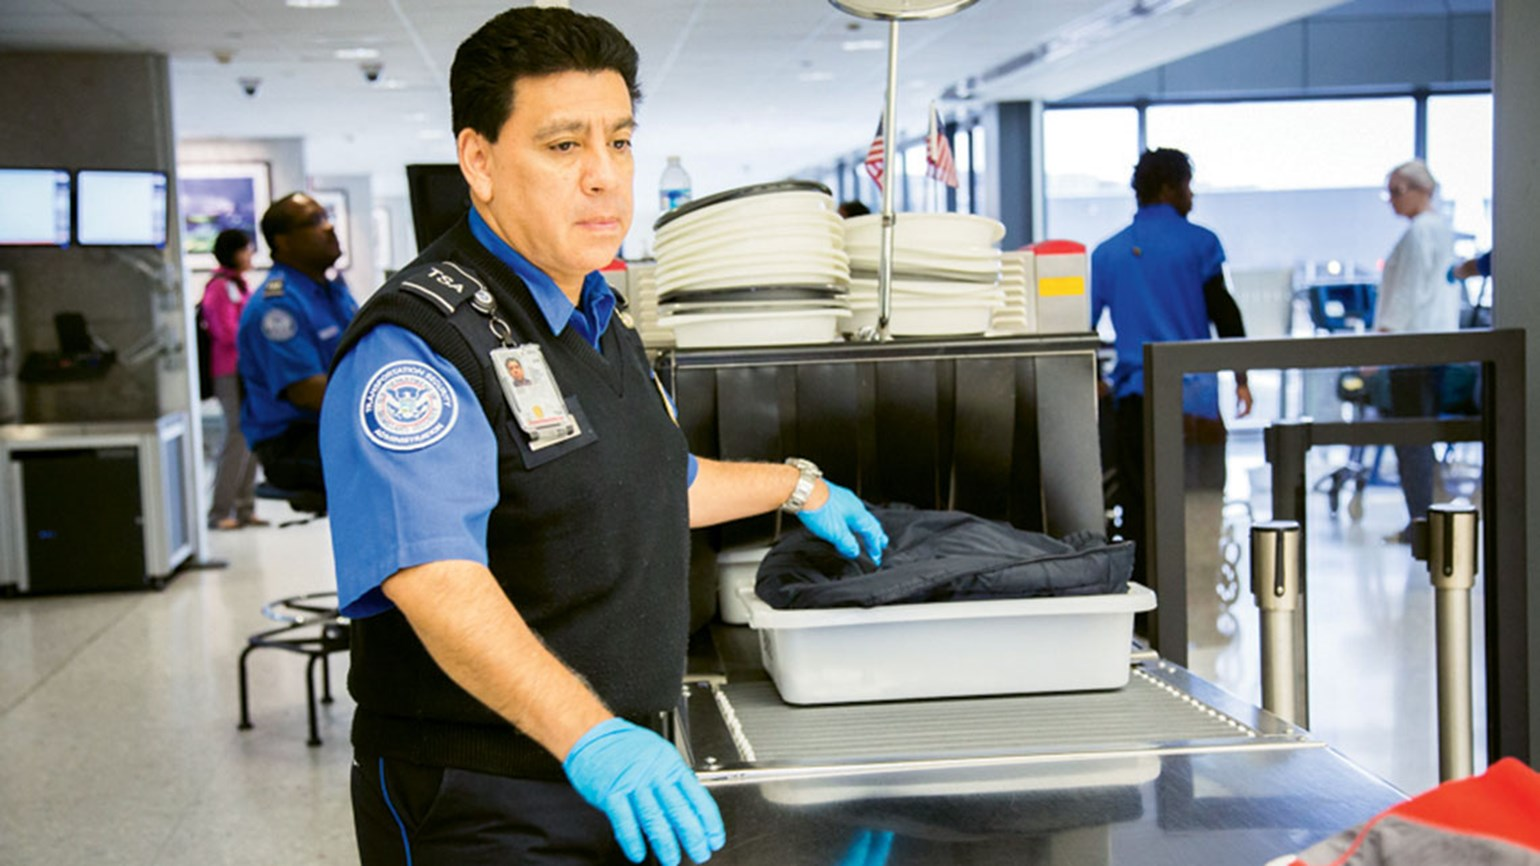 Luck among factors that help U.S. airports avoid terrorism